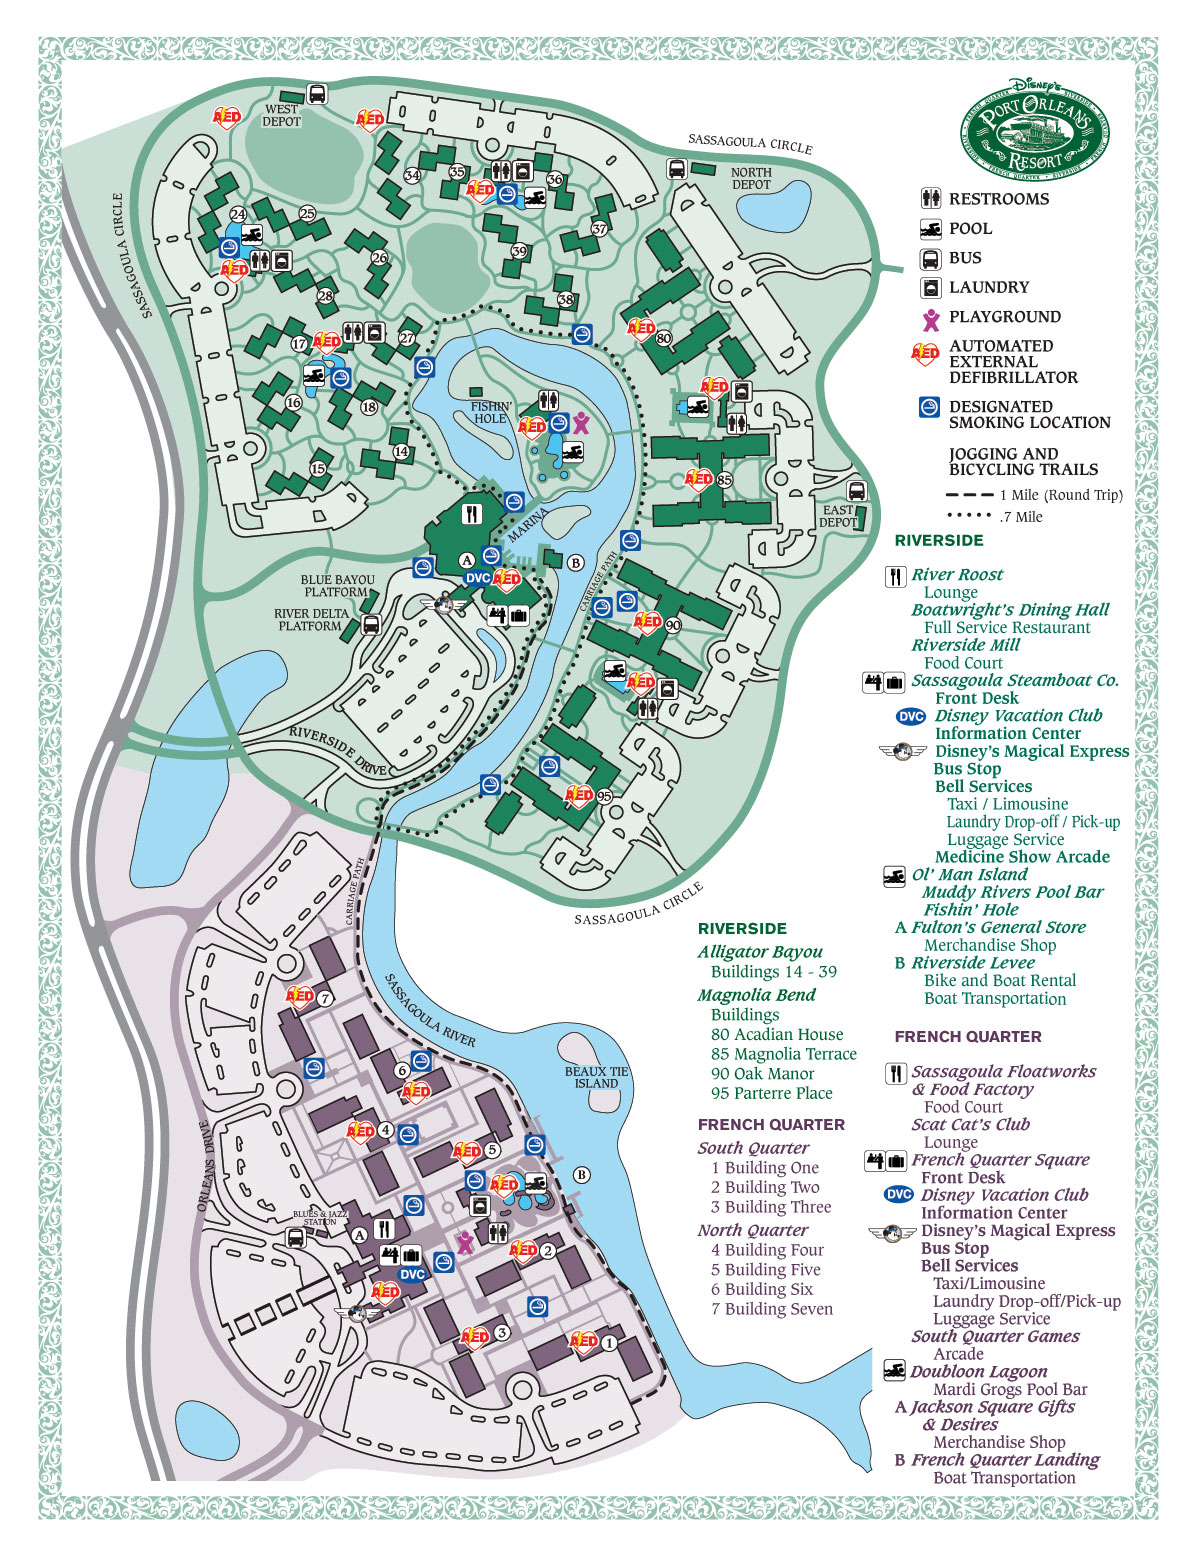 Disney Magic - Maps of Walt Disney World on